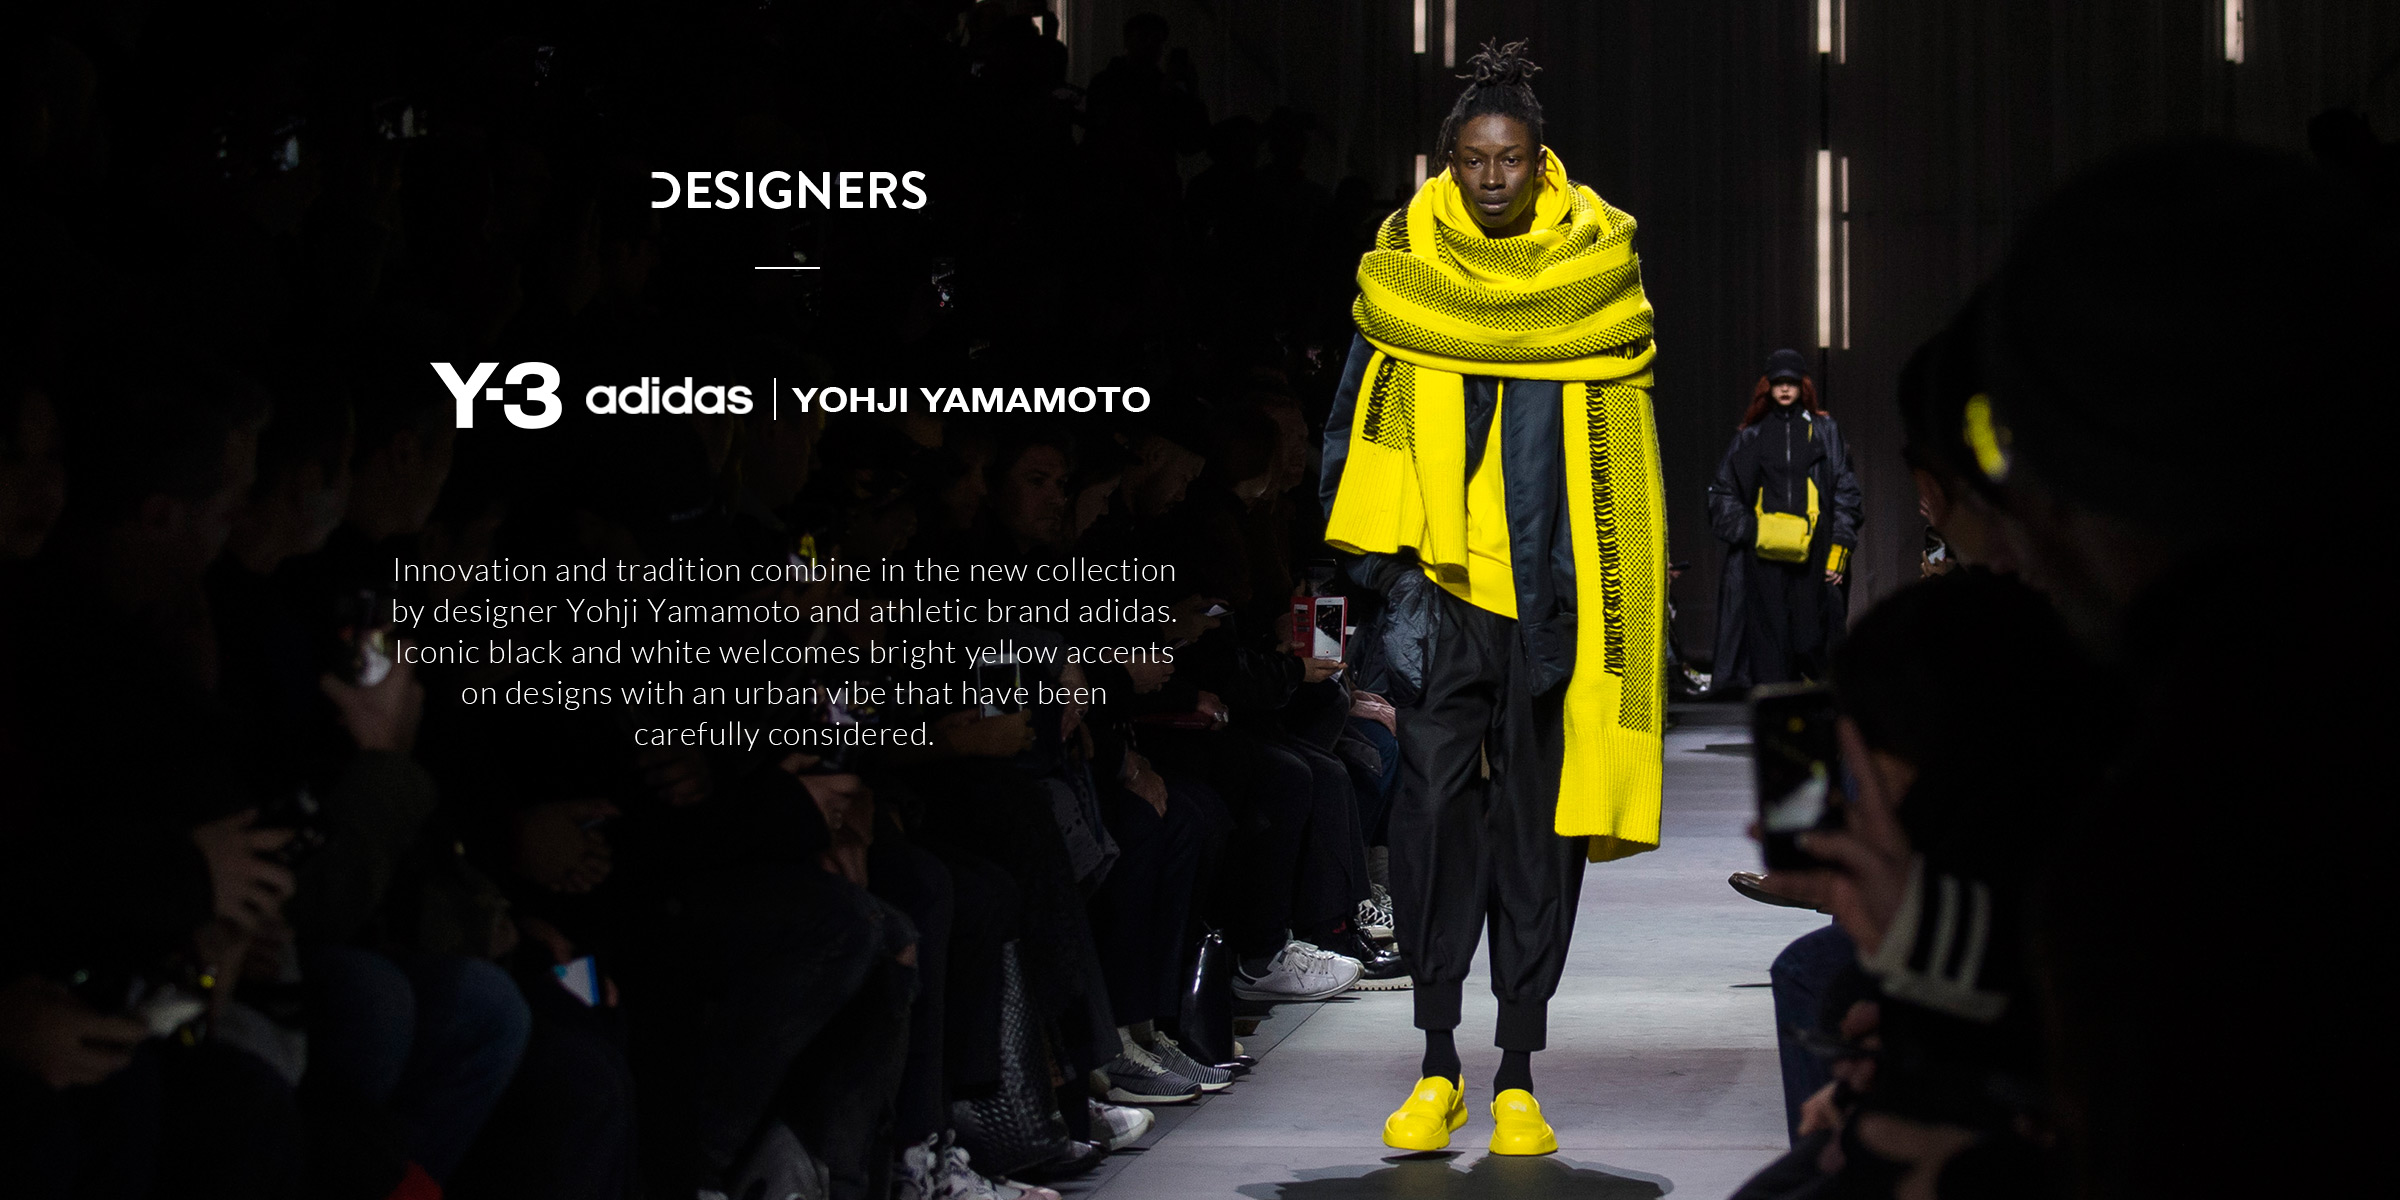 A18-ACCUEIL-DESIGNERS-HOMME-Y-3.psd